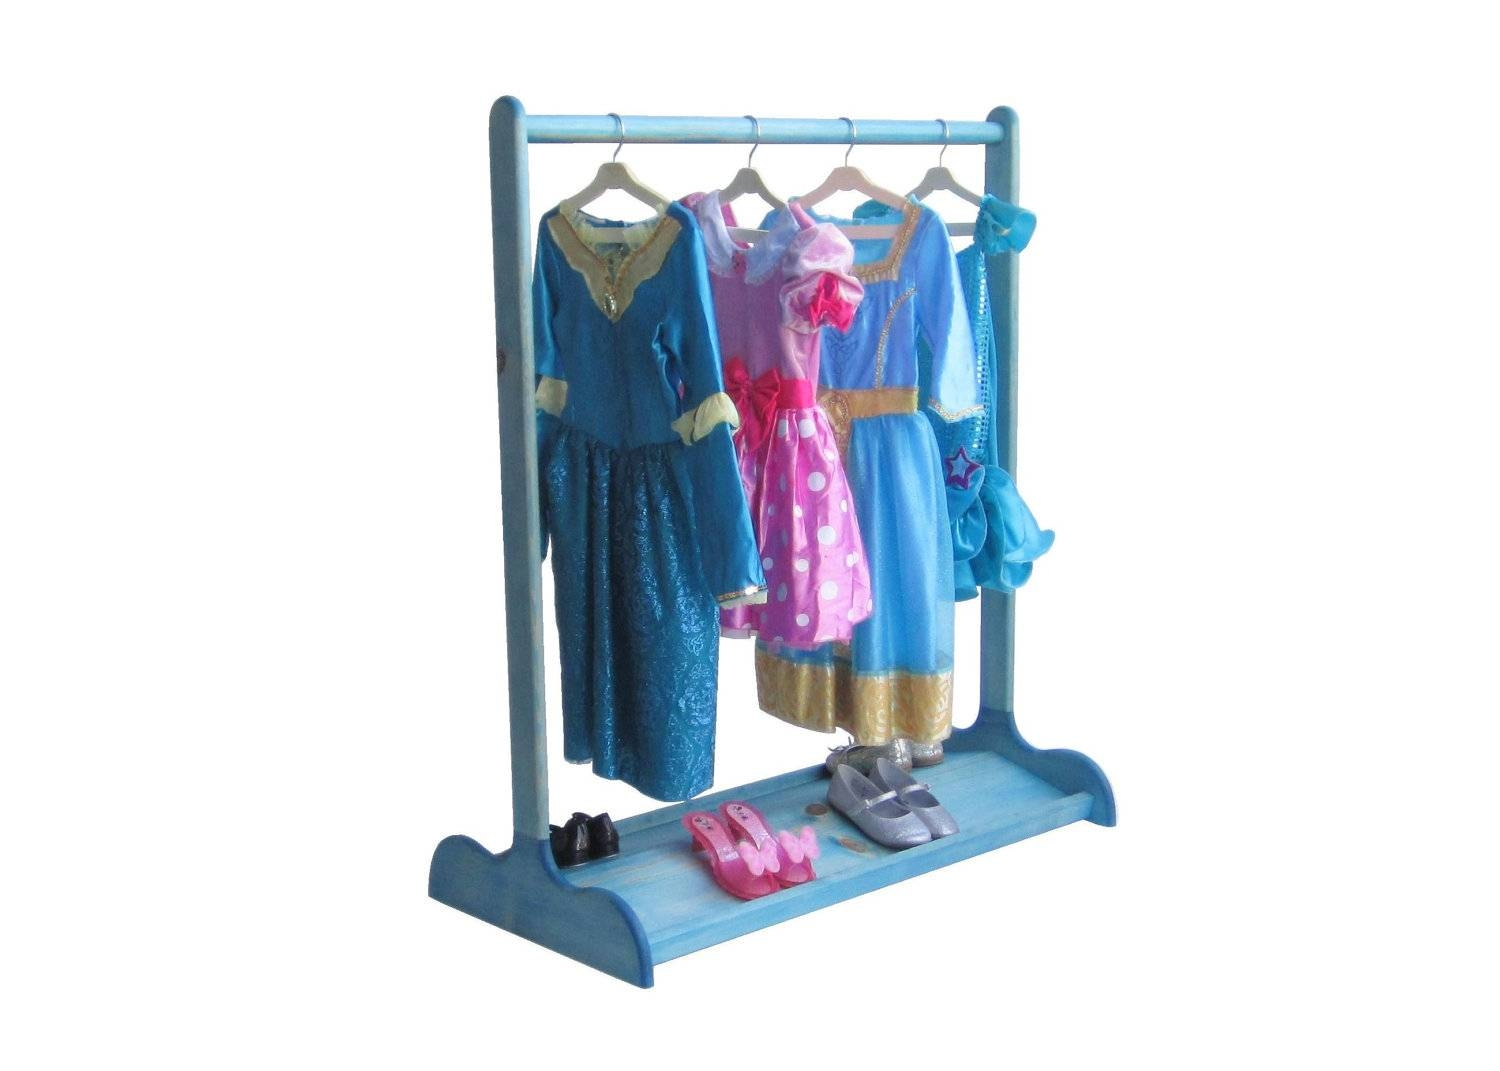 Dress Up Stand For Kids / Double Sided Shoe Rack / Sapphire Pertaining To Childrens Double Rail Wardrobes (View 21 of 30)